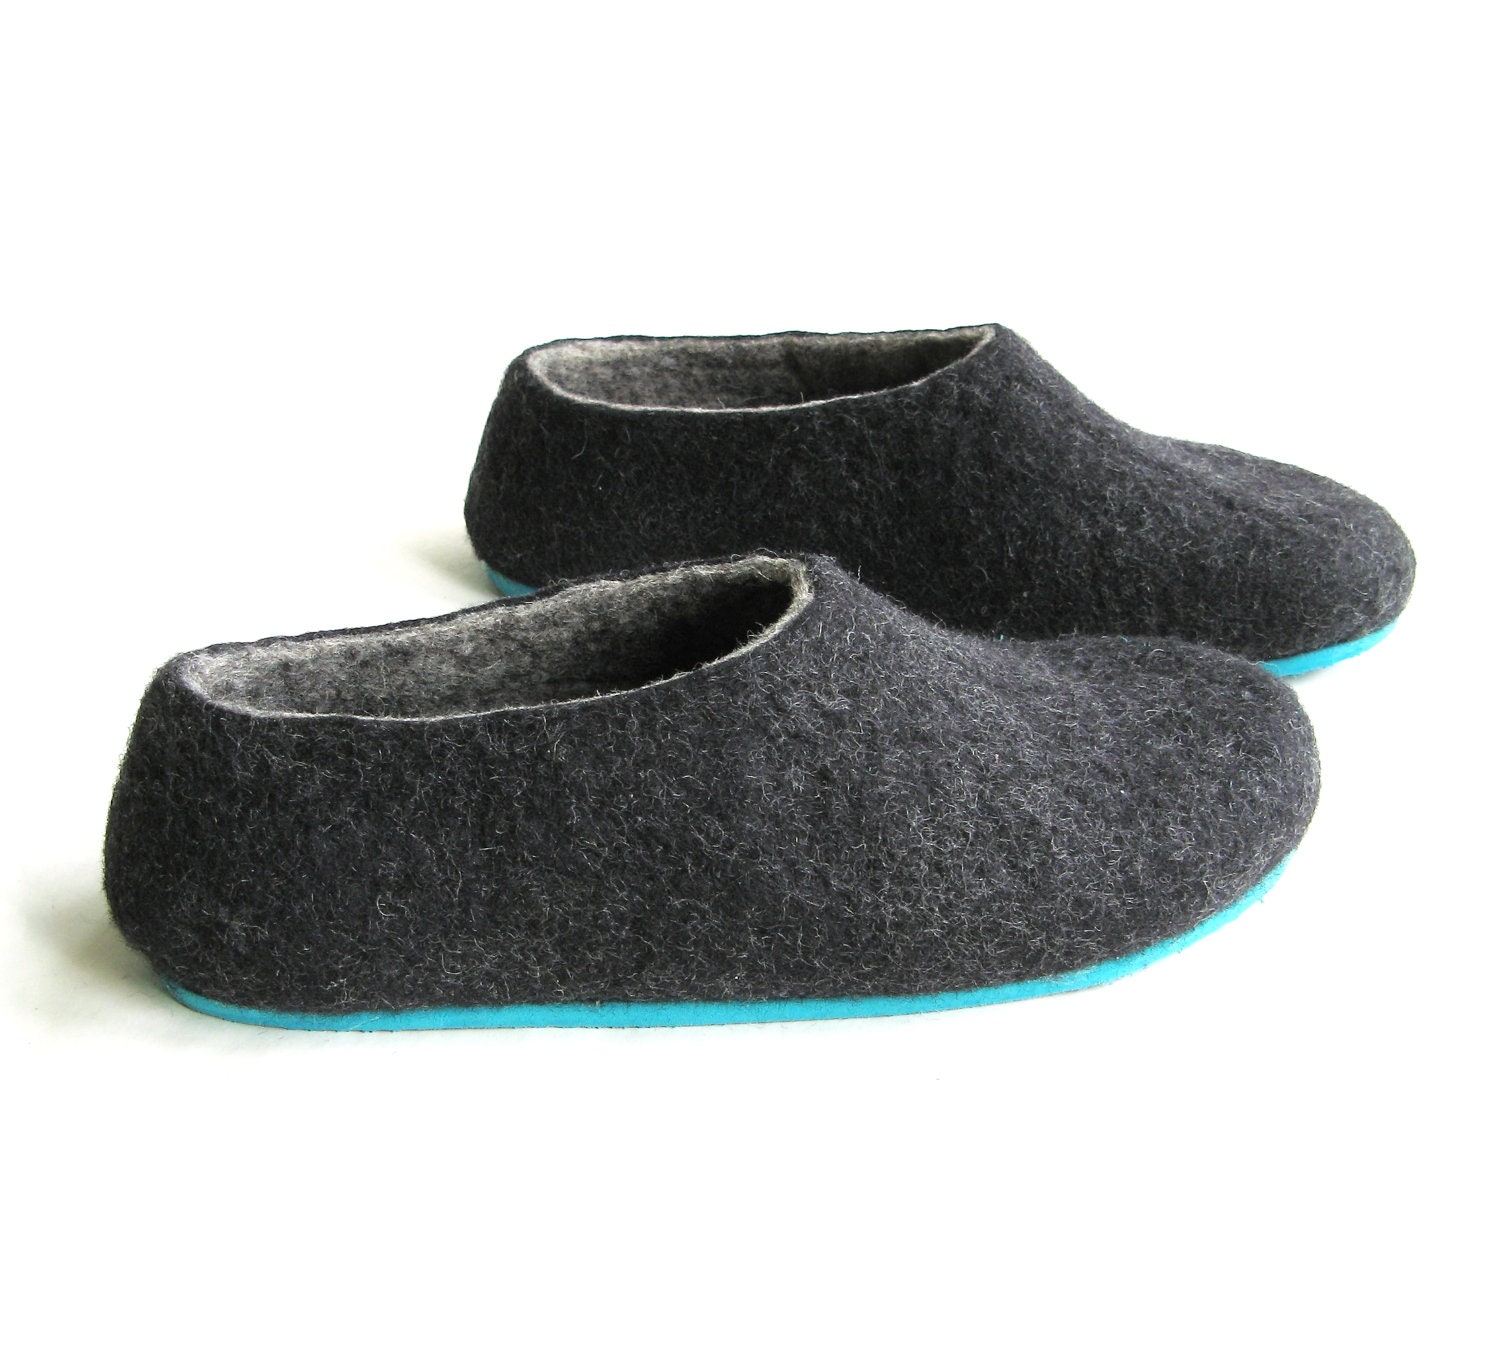 Charcoal felted slippers wool shoes minimalist shoes for Minimalist house slippers